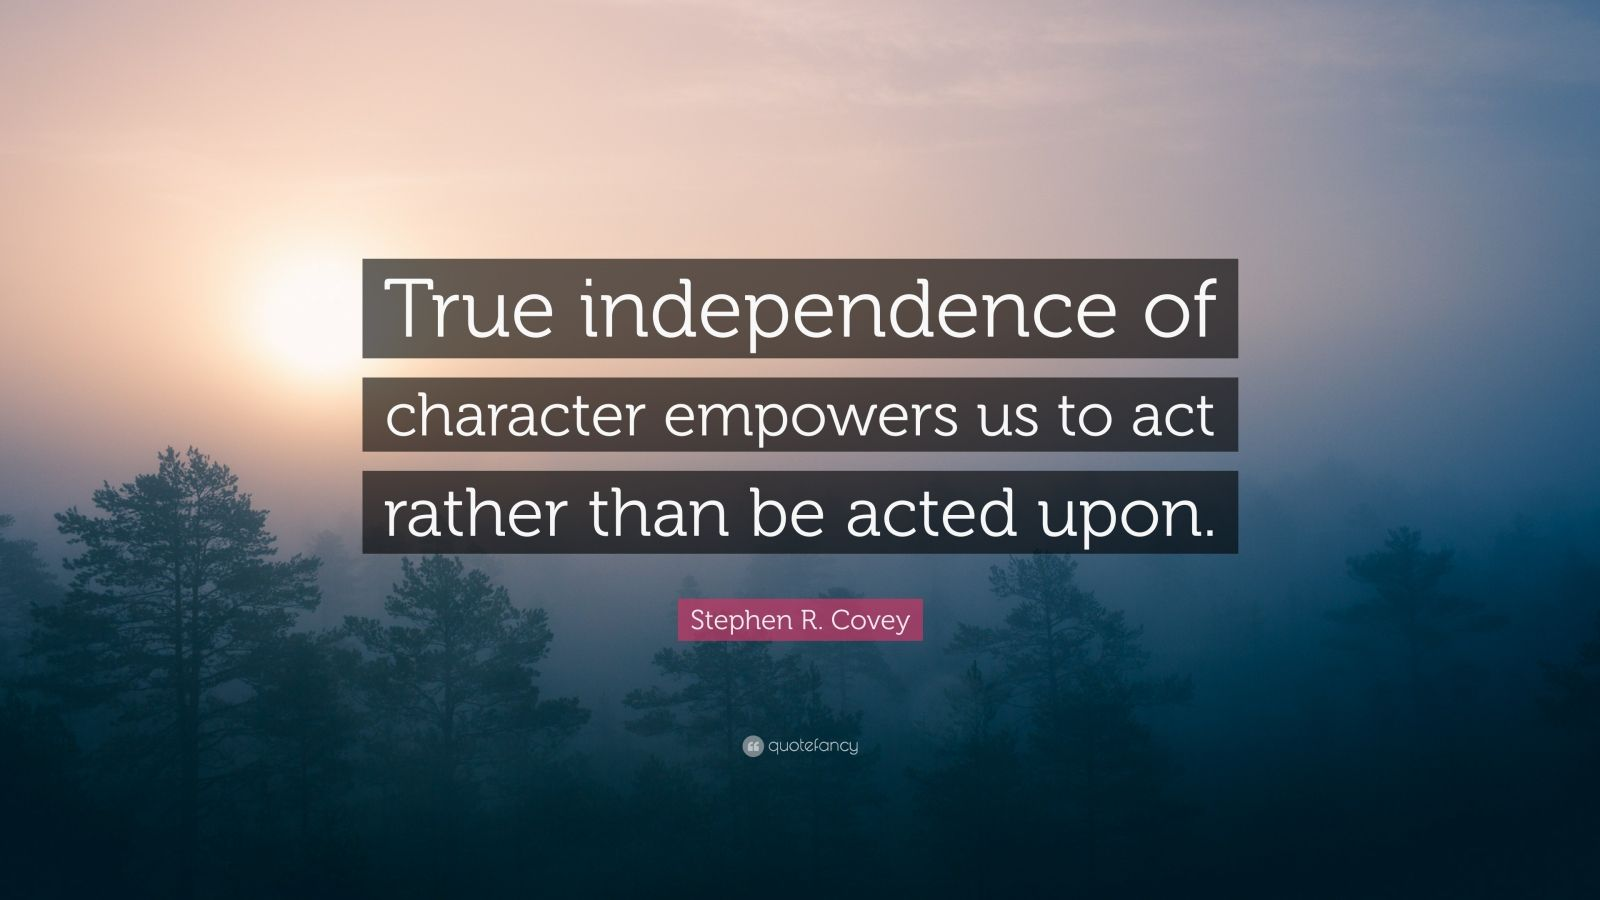 """Stephen R. Covey Quote: """"True independence of character empowers us to act rather than be acted upon."""""""